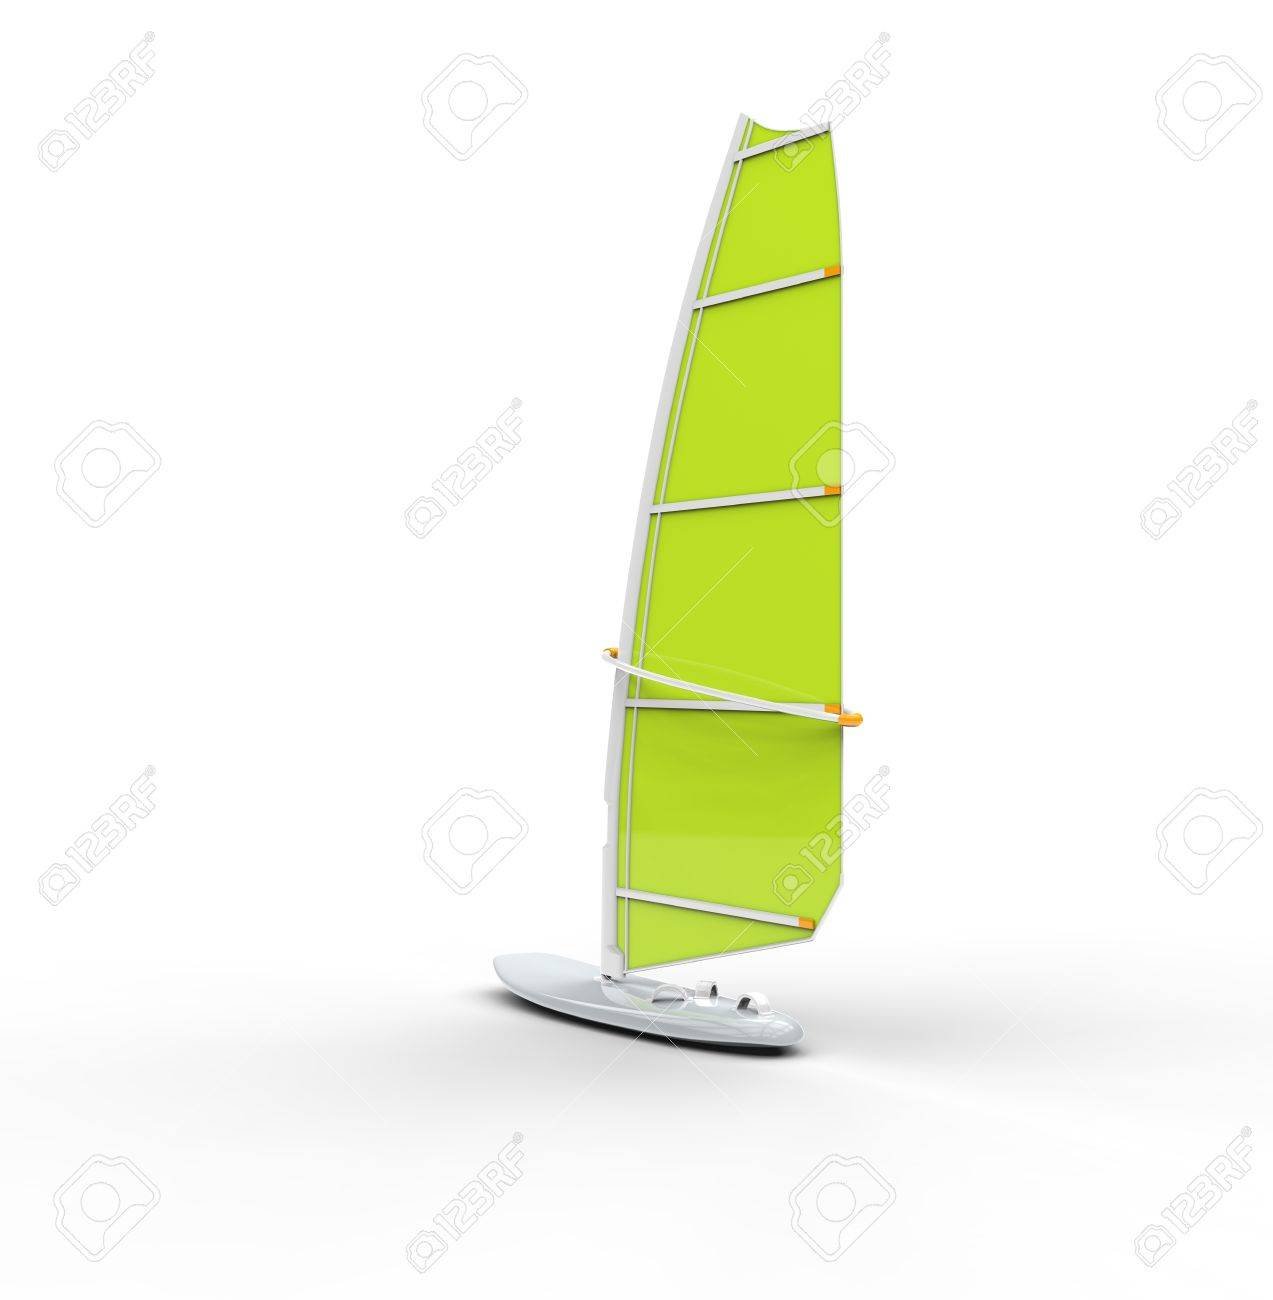 Green windsurf board, isolated on white background, ideal for